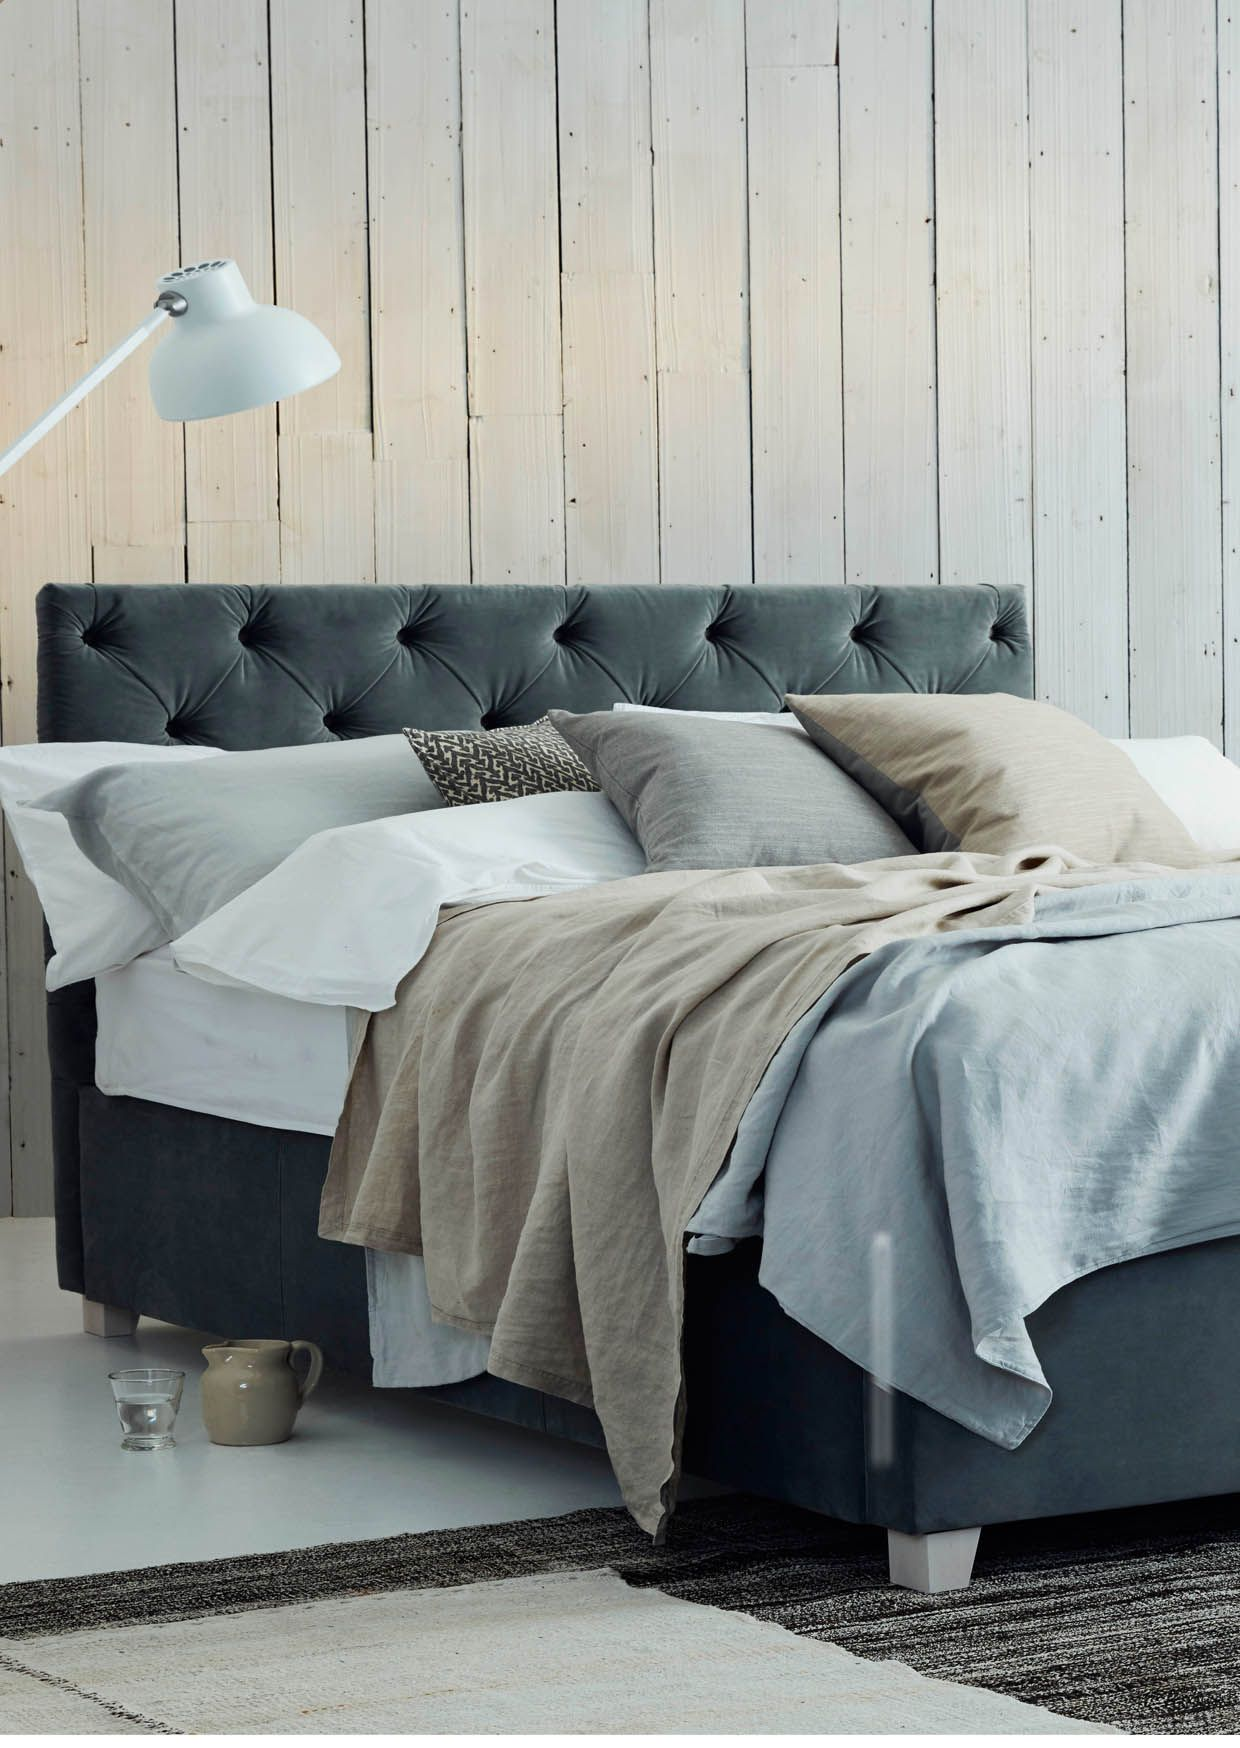 The Issie Upholstered Storage Bed Offers Contemporary Design For Less